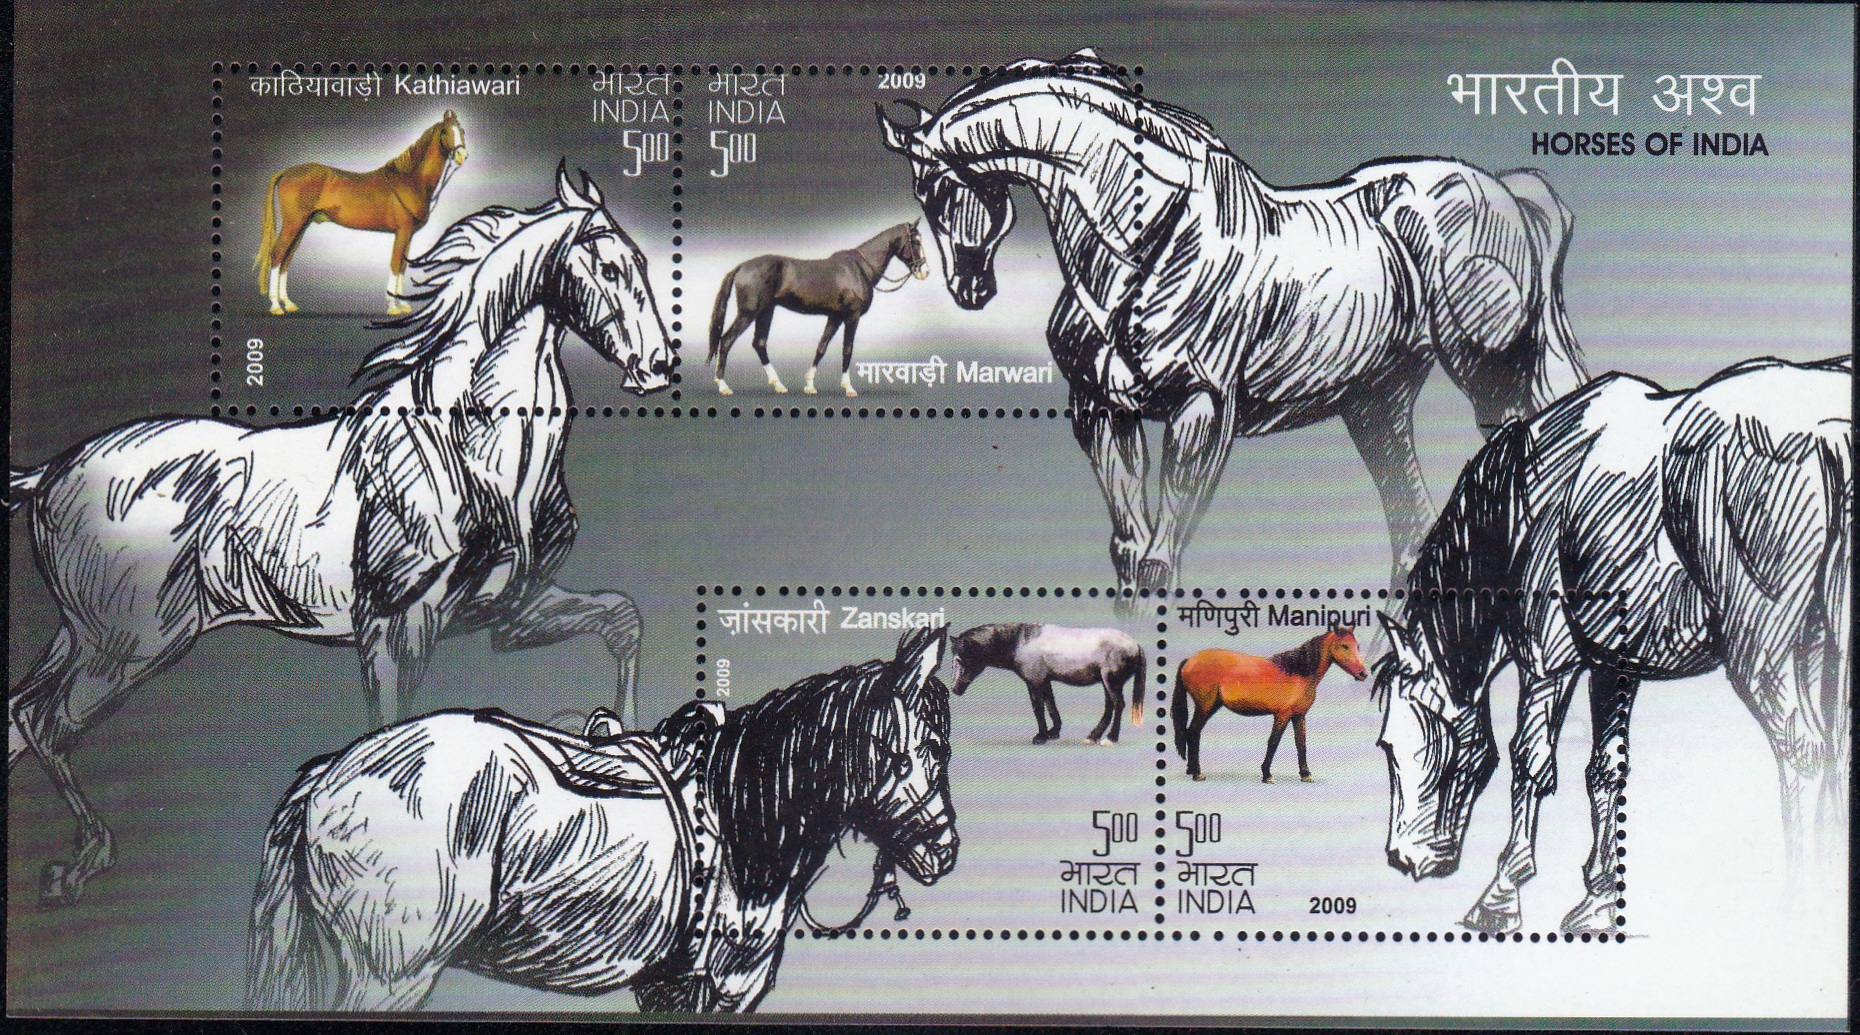 2530 Horses of lndia [Miniature Sheet]